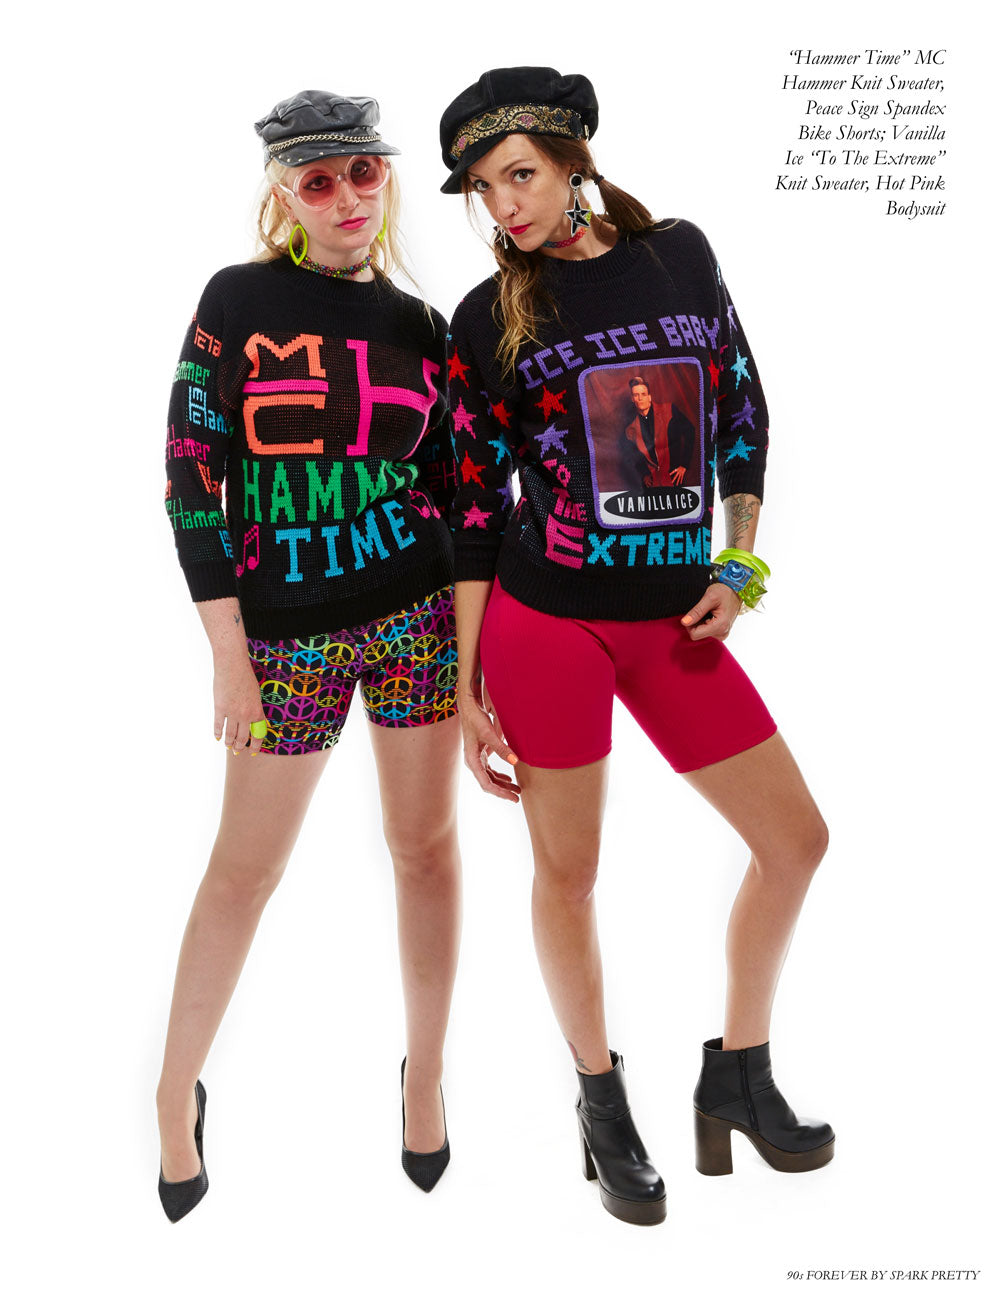 90s Forever Retro Vintage Fashion Apparel Lookbook - MC Hammer Knit Sweater and Vanilla Ice Sweater